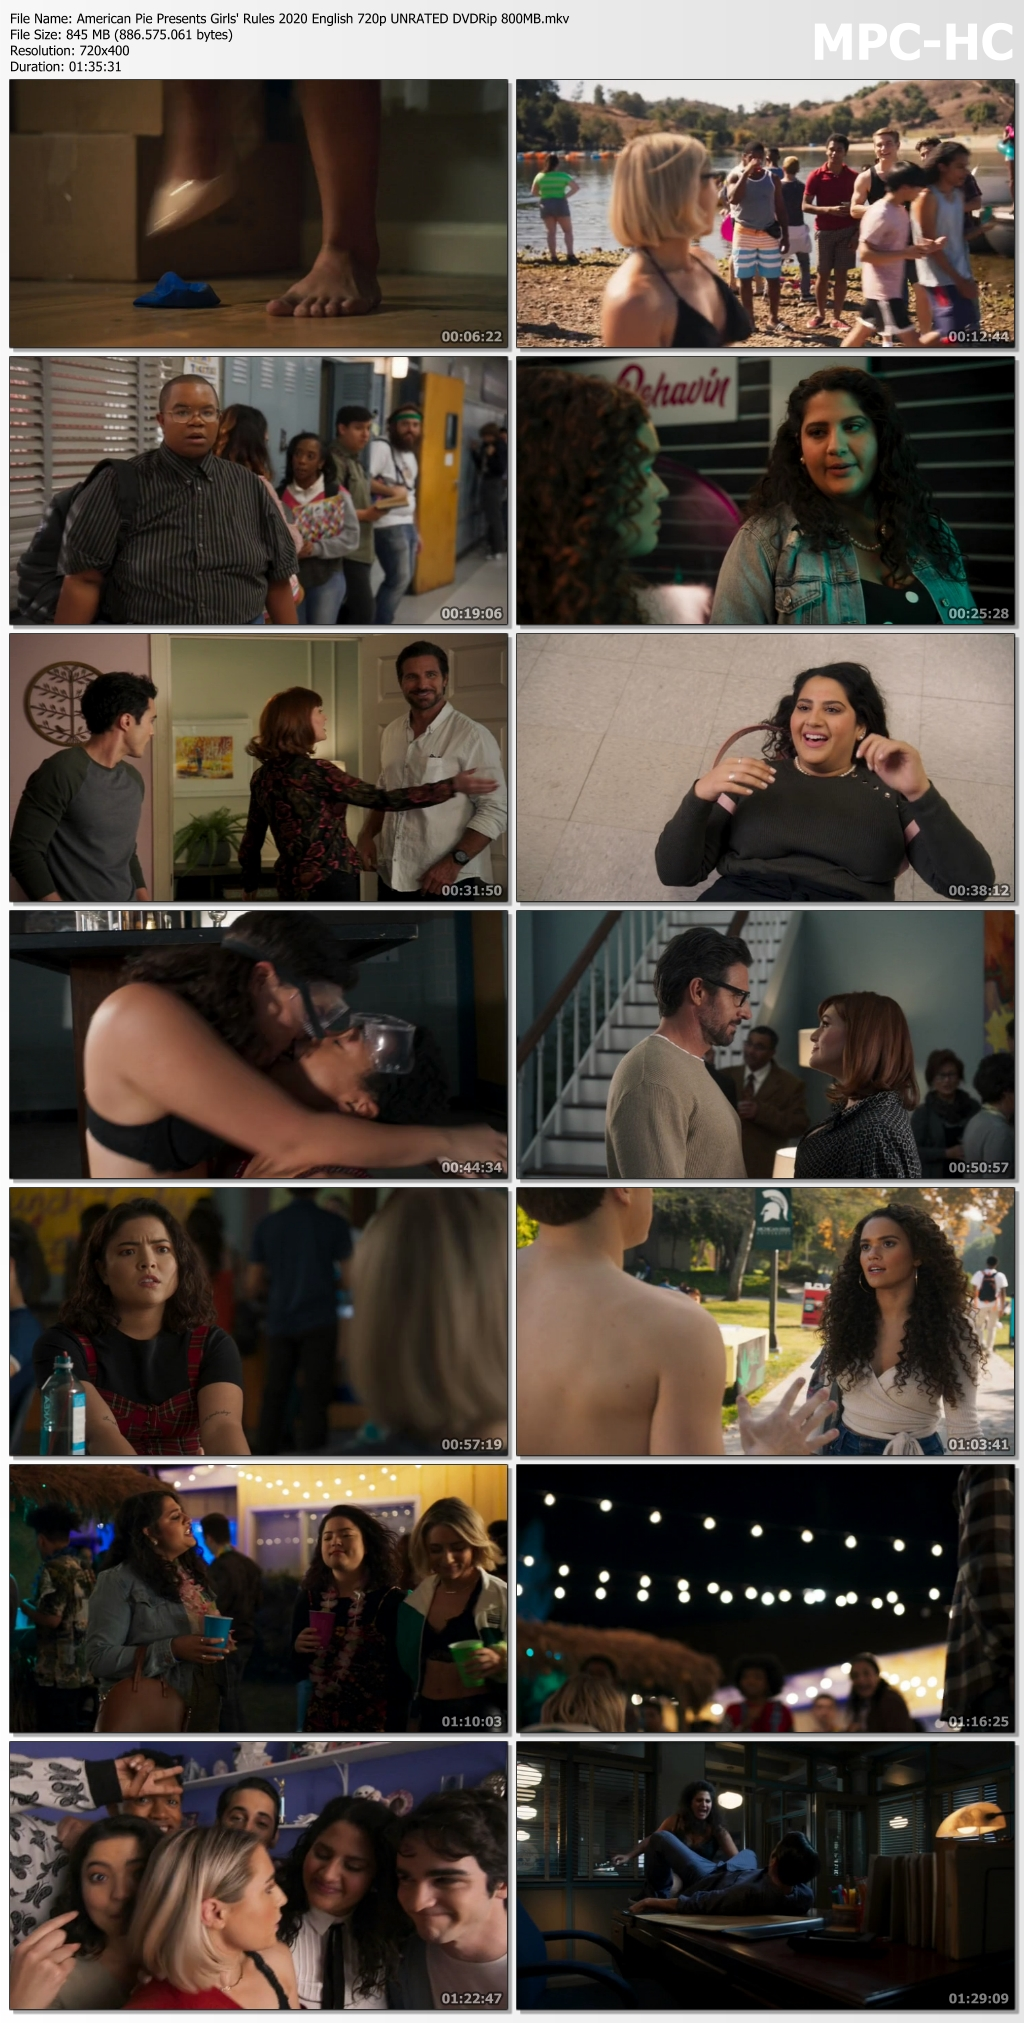 American-Pie-Presents-Girls-Rules-2020-English-720p-UNRATED-DVDRip-800-MB-mkv-thumbs